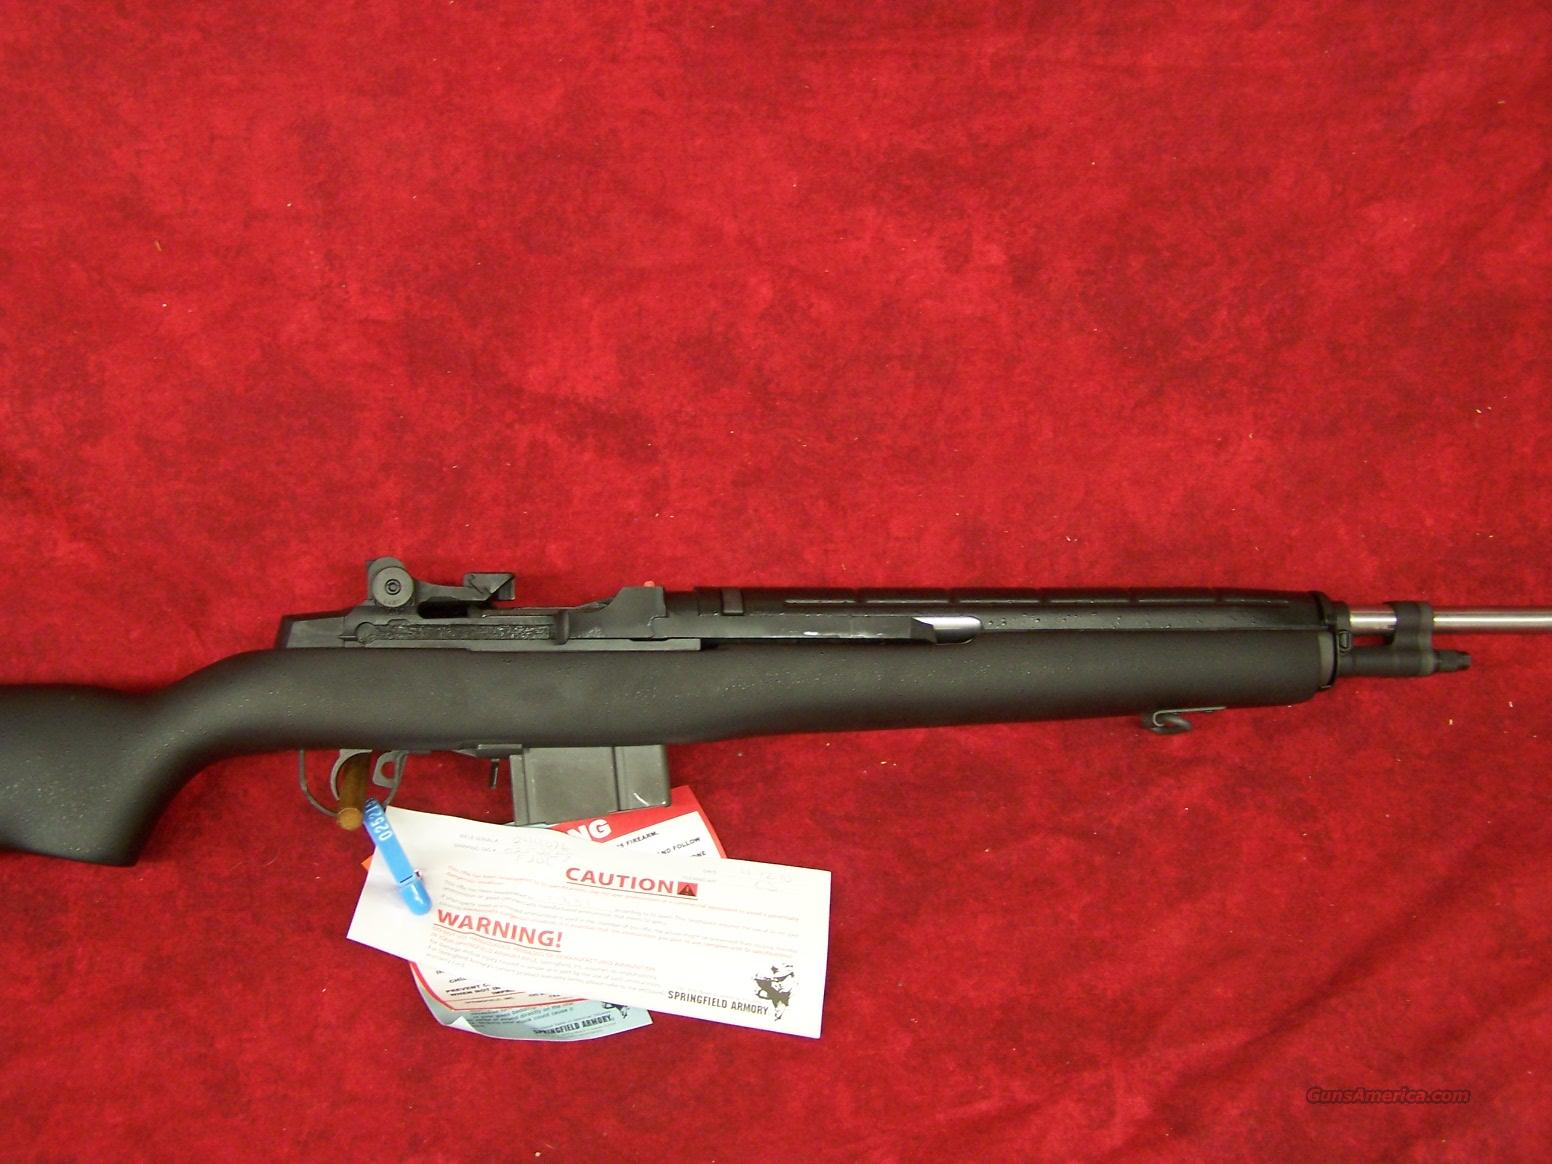 Springfield Armory M1A Super Match Black McMillian Stock with Stainless Steel Barrel 7.62 NATO(SA9804).    Guns > Rifles > Springfield Armory Rifles > M1A/M14